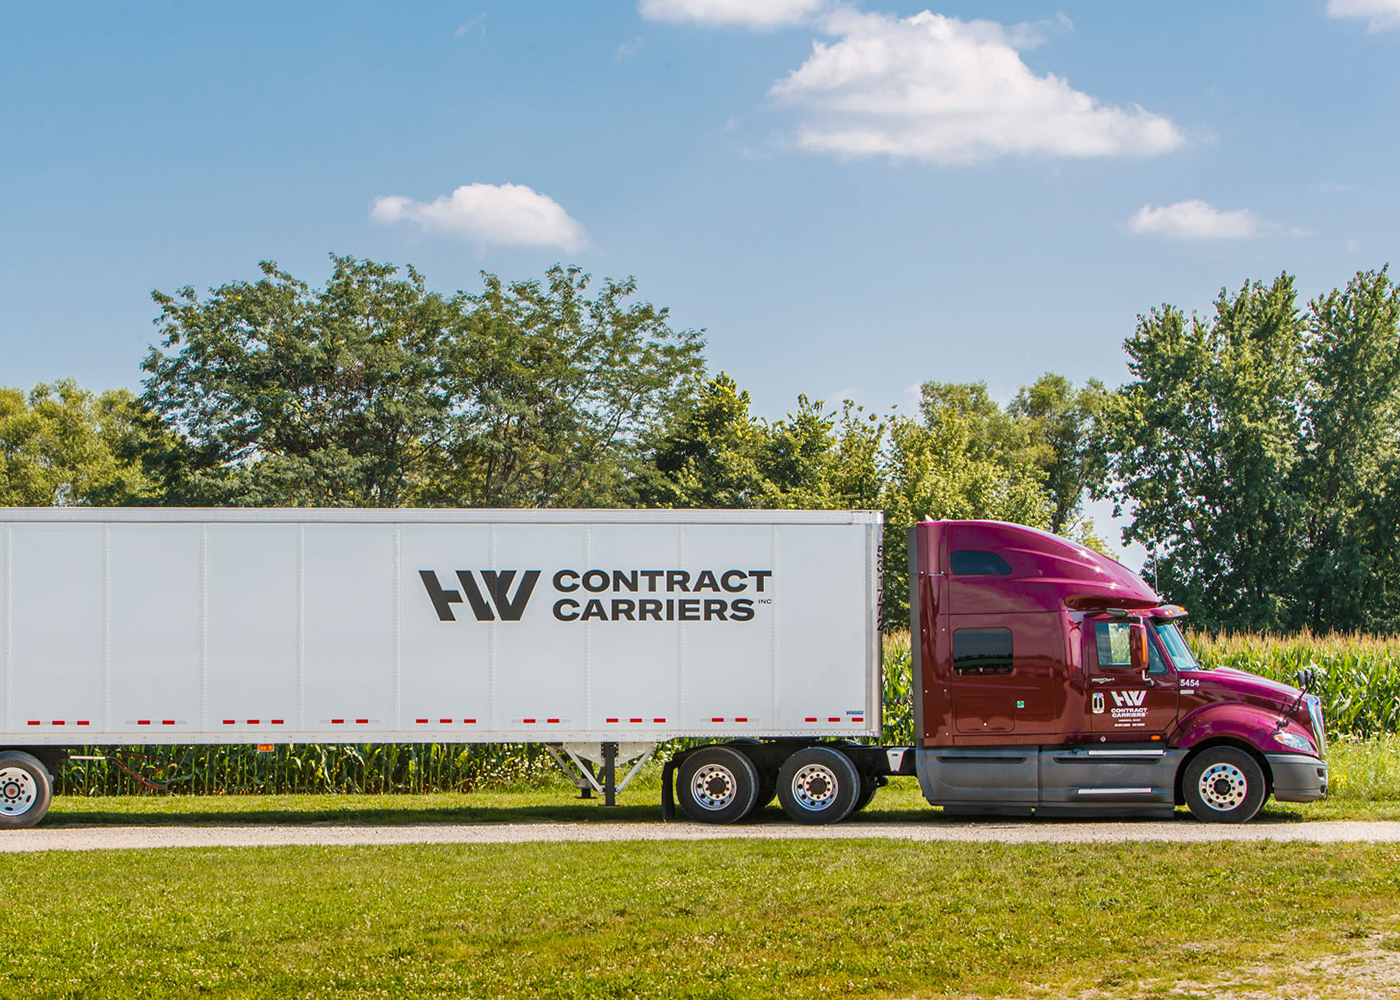 Studio Freight - H&W Contract Carriers Truck